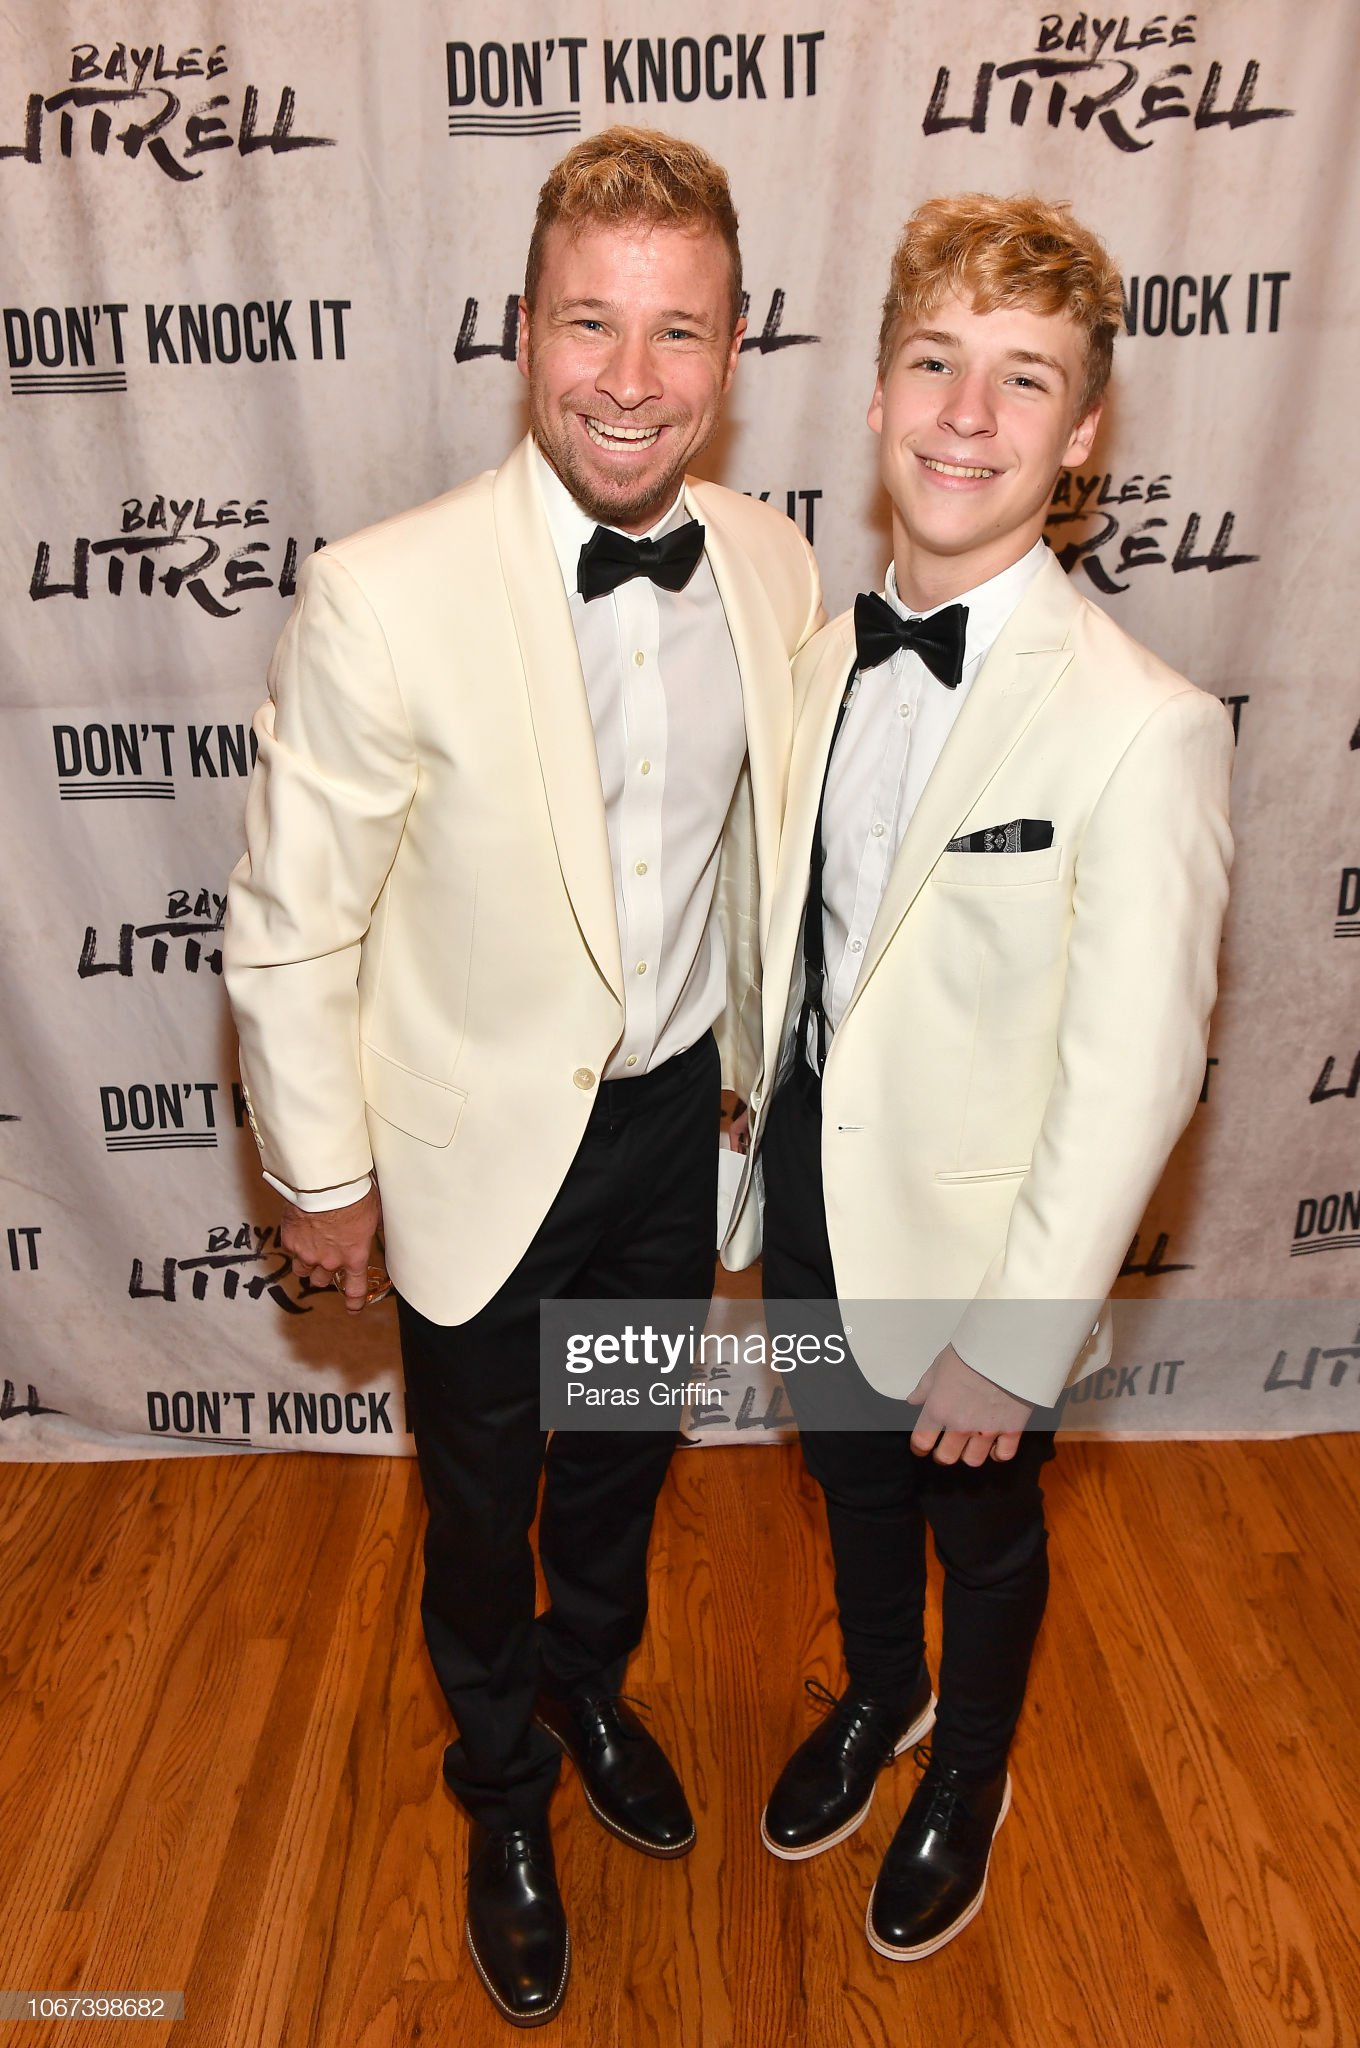 ¿Cuánto mide Baylee Littrell? - Altura - Real height Singer-brian-littrell-of-backstreet-boys-pose-with-his-baylee-at-picture-id1067398682?s=2048x2048